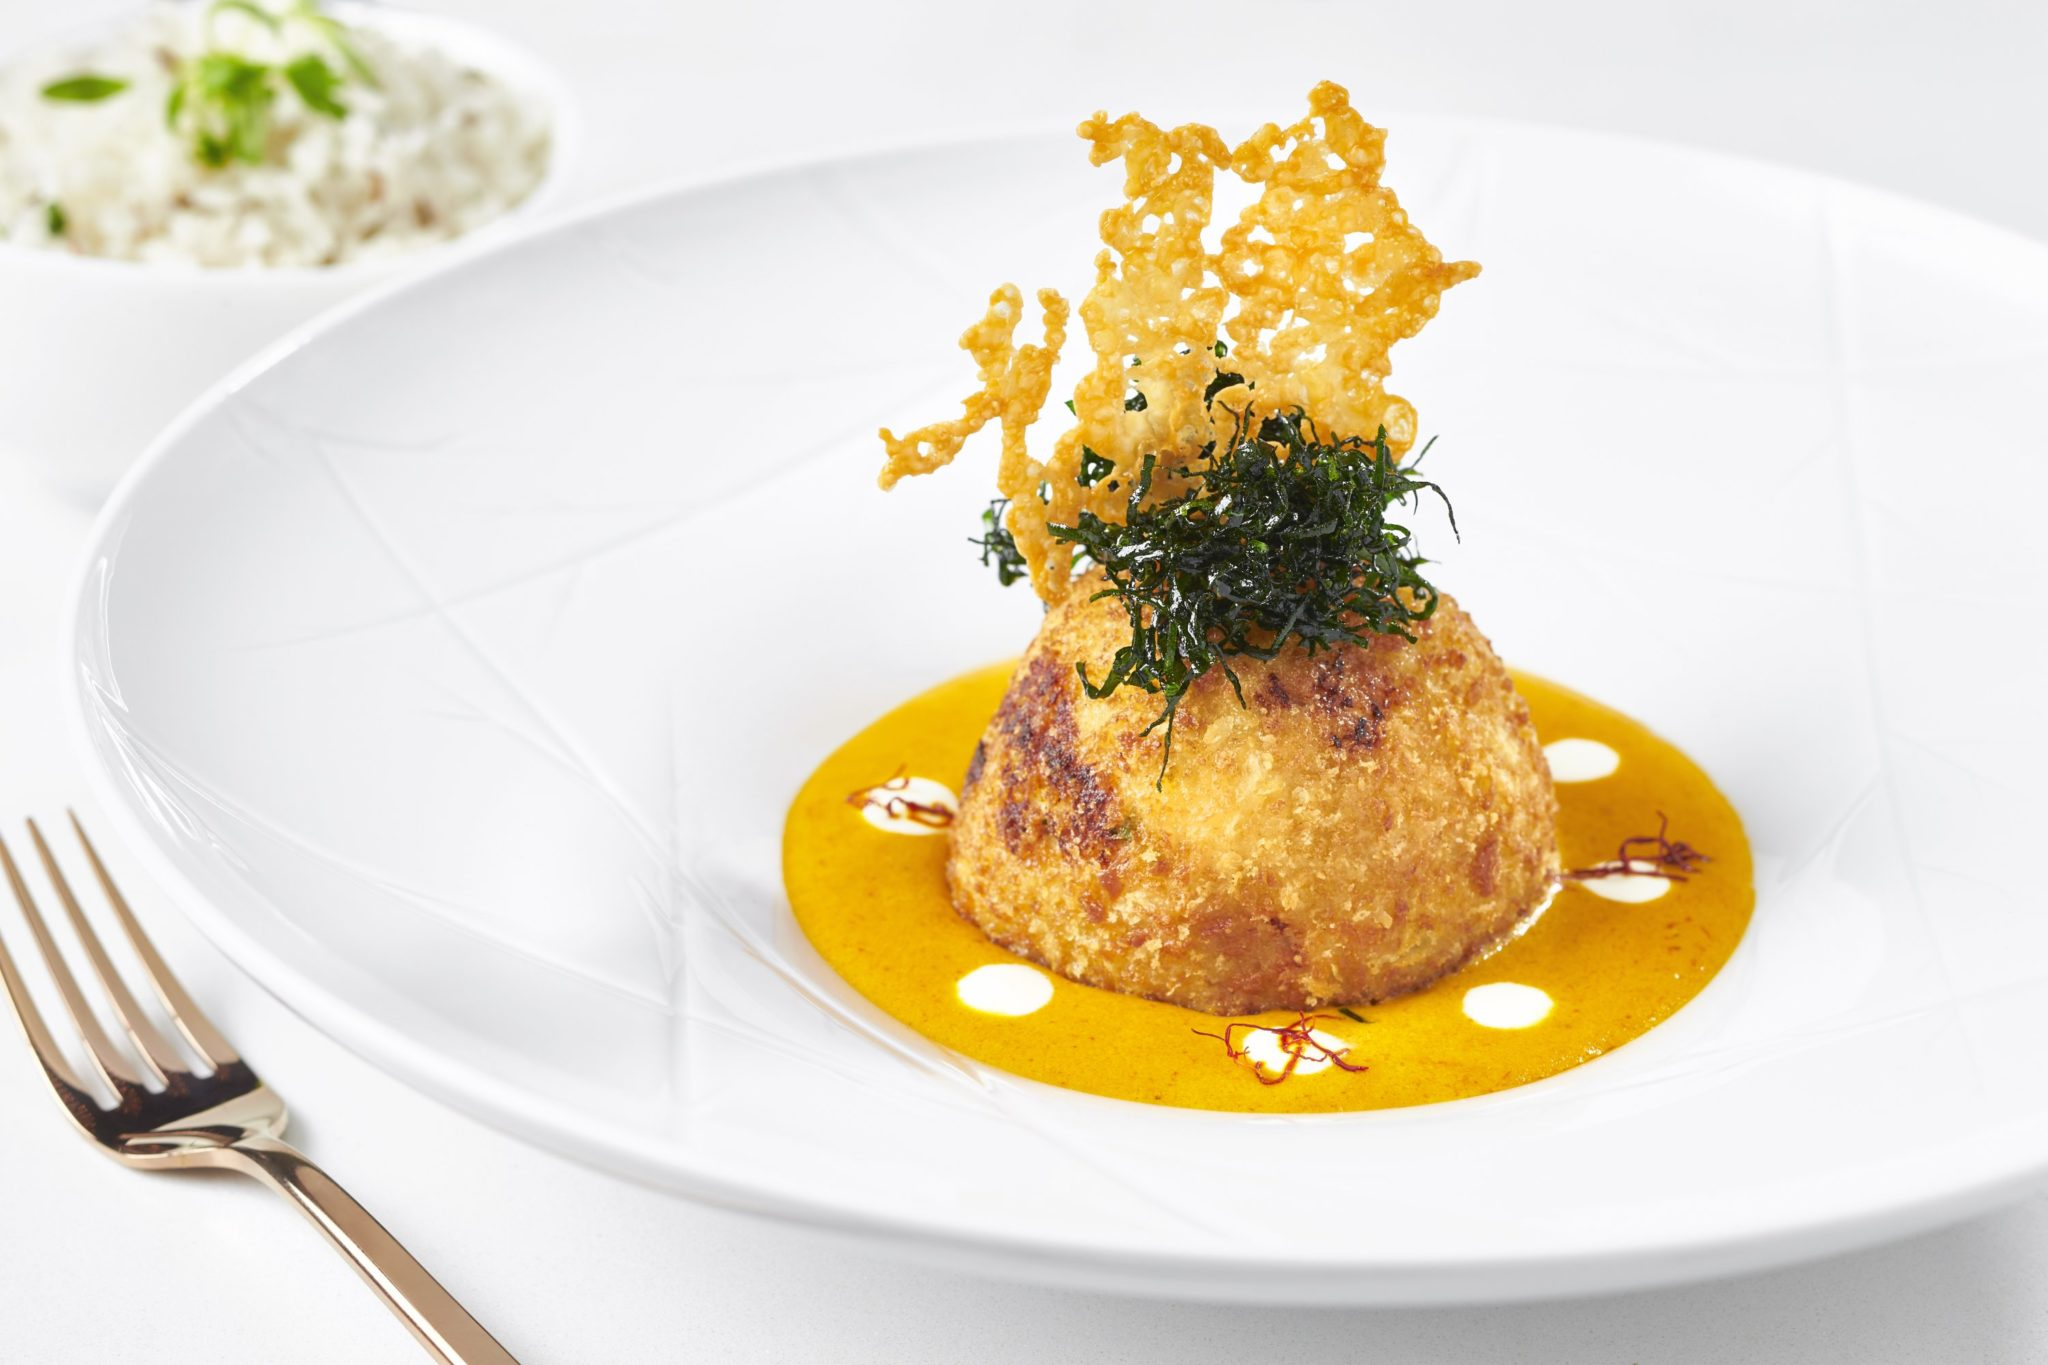 Chef and owner Rajiv Chopra garnishes paneer and 4 cheese kofta with a parmesan wafer. Photograph by Greg Powers.